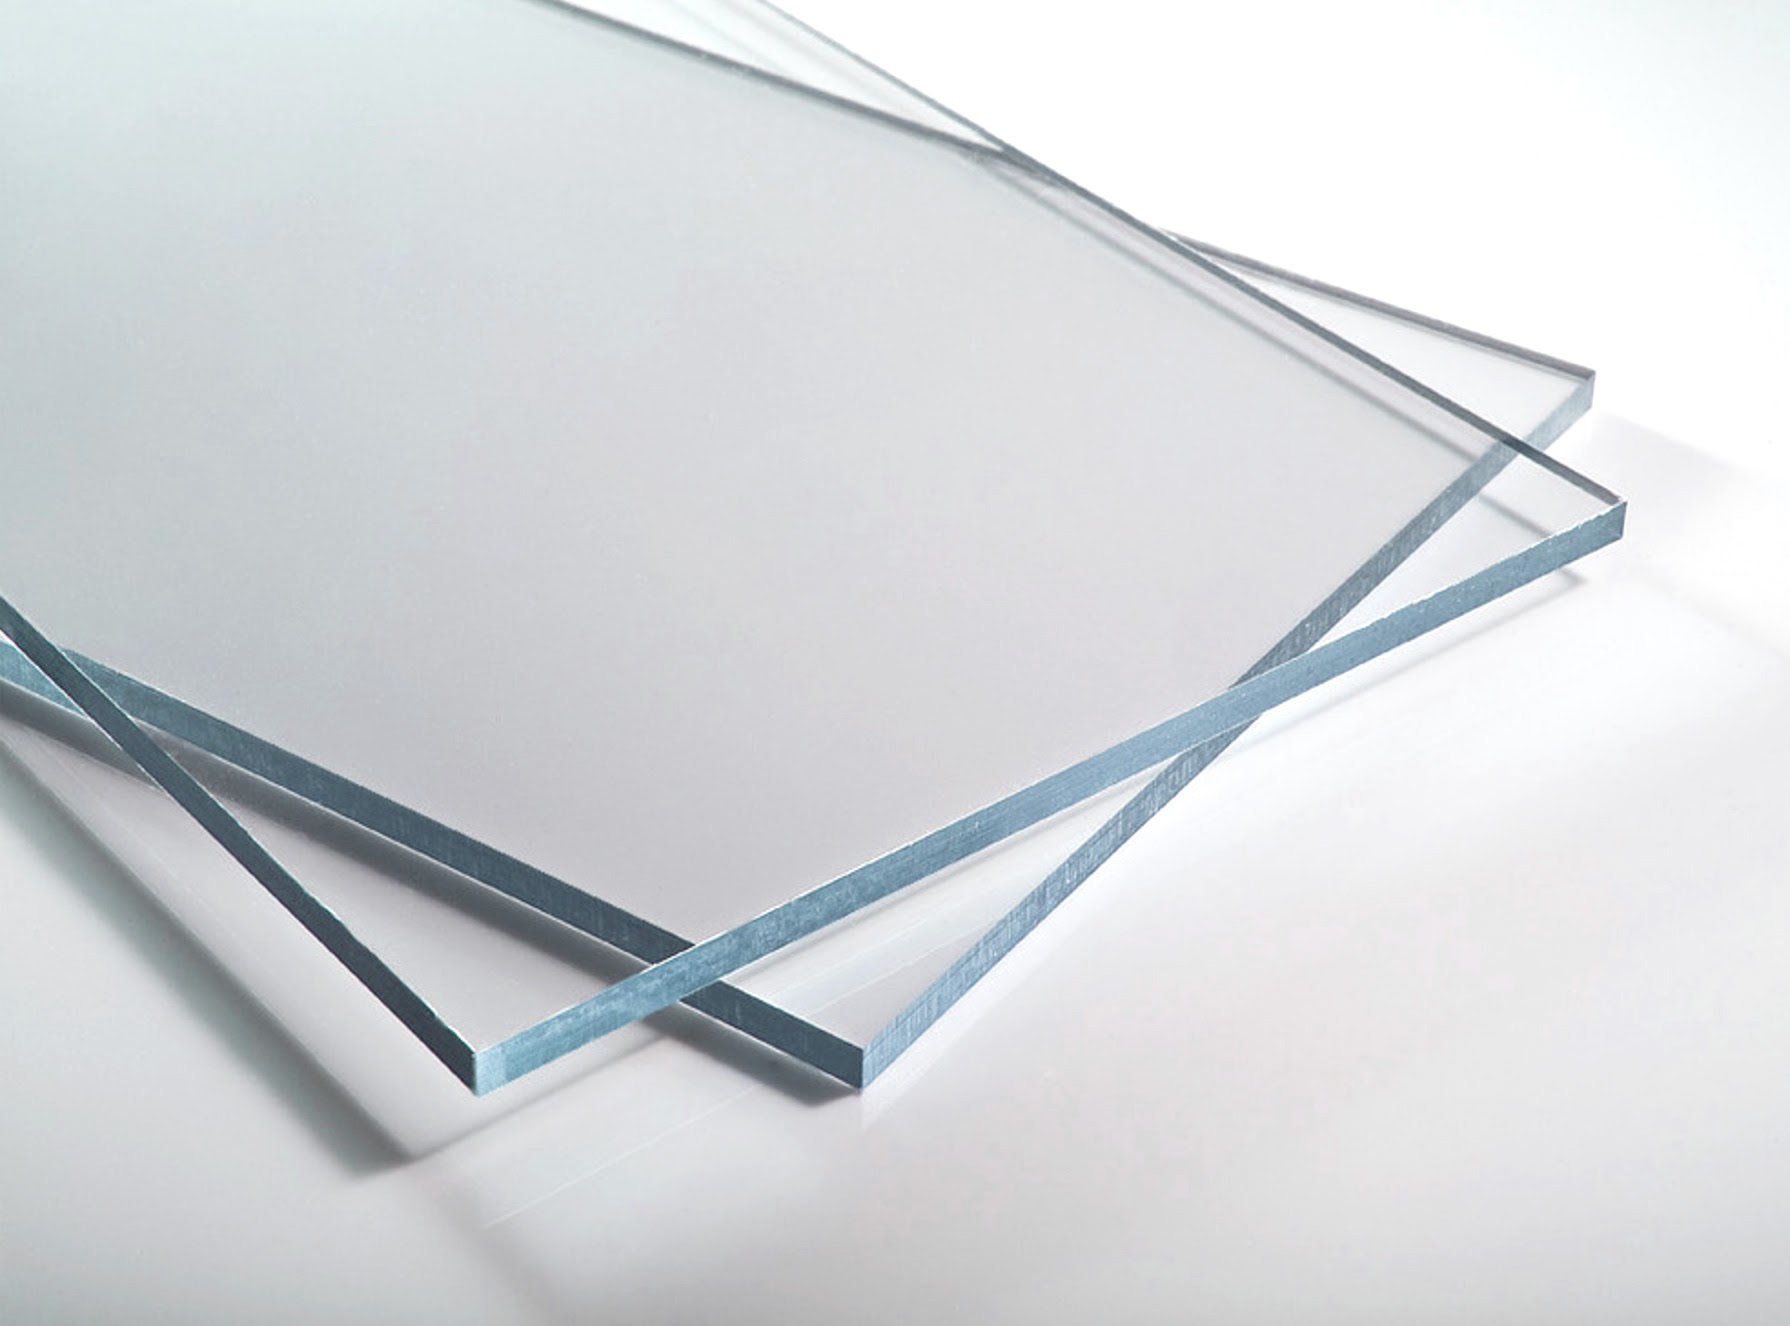 Polycarbonate Lexan Sheet Clear Cut To Size Custom Order Ebay - Polycarbonate Sheet